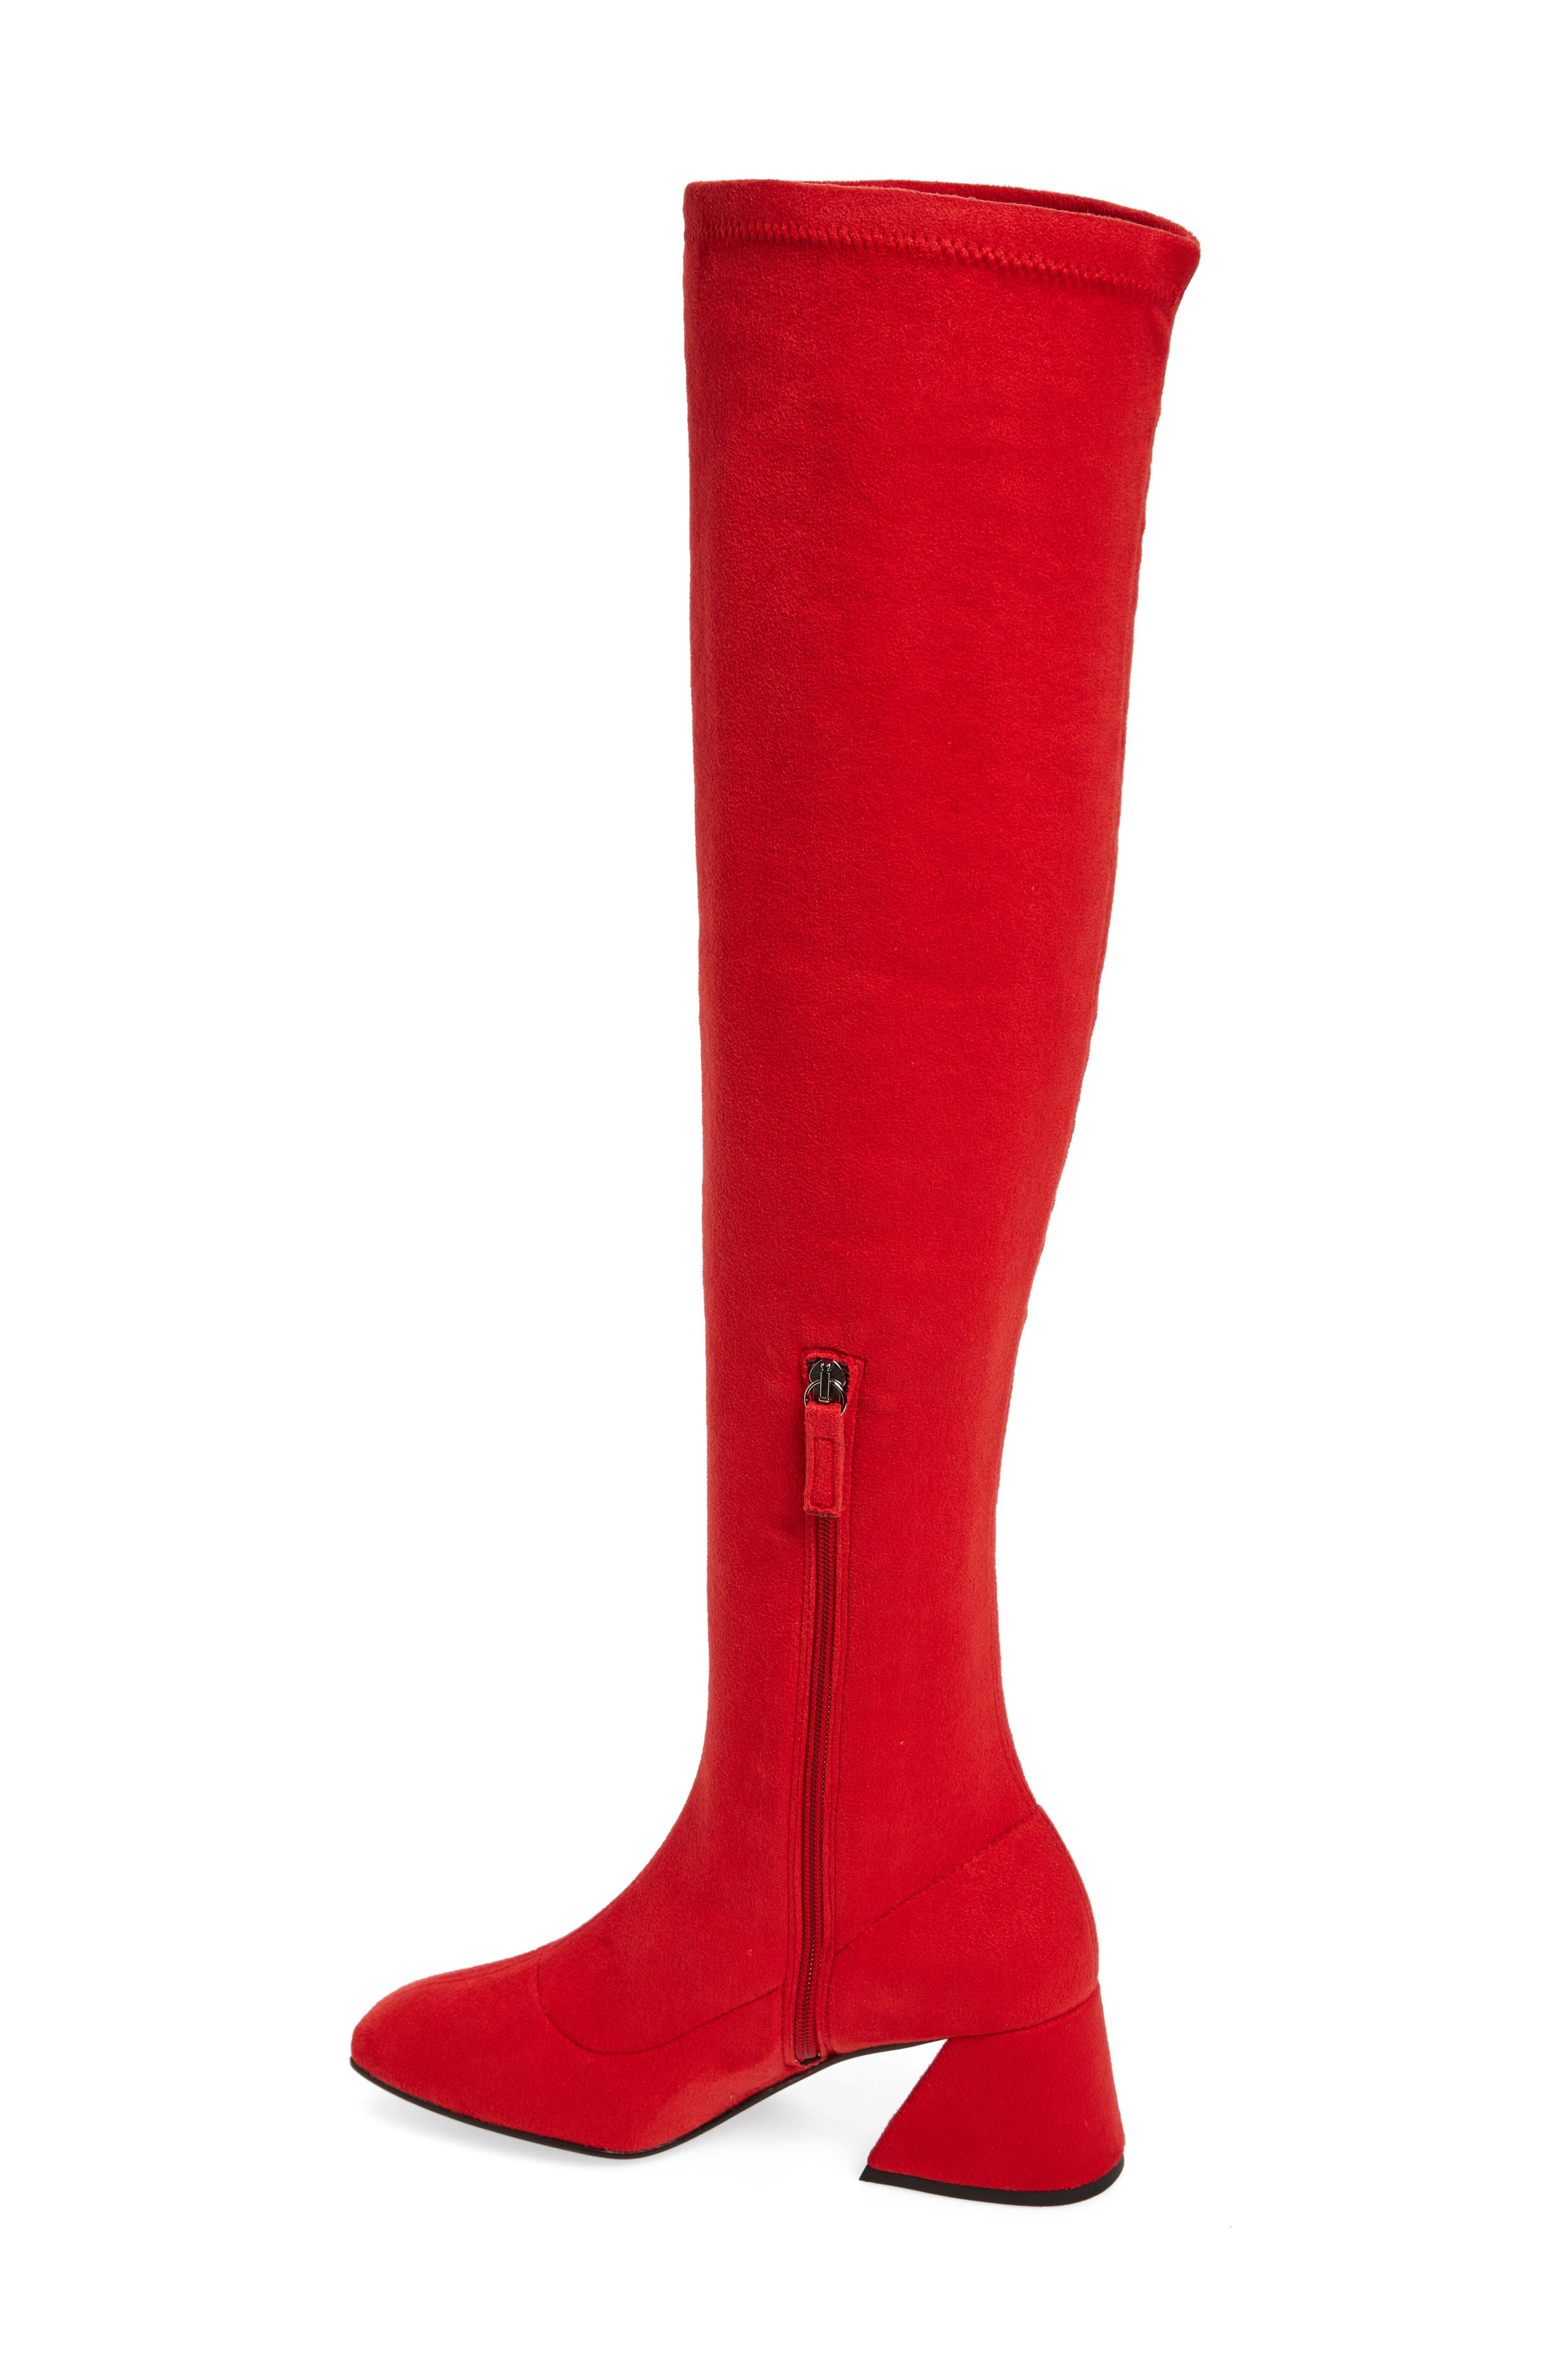 Cappuccino Over the Knee Boot,                             Alternate thumbnail 2, color,                             Red